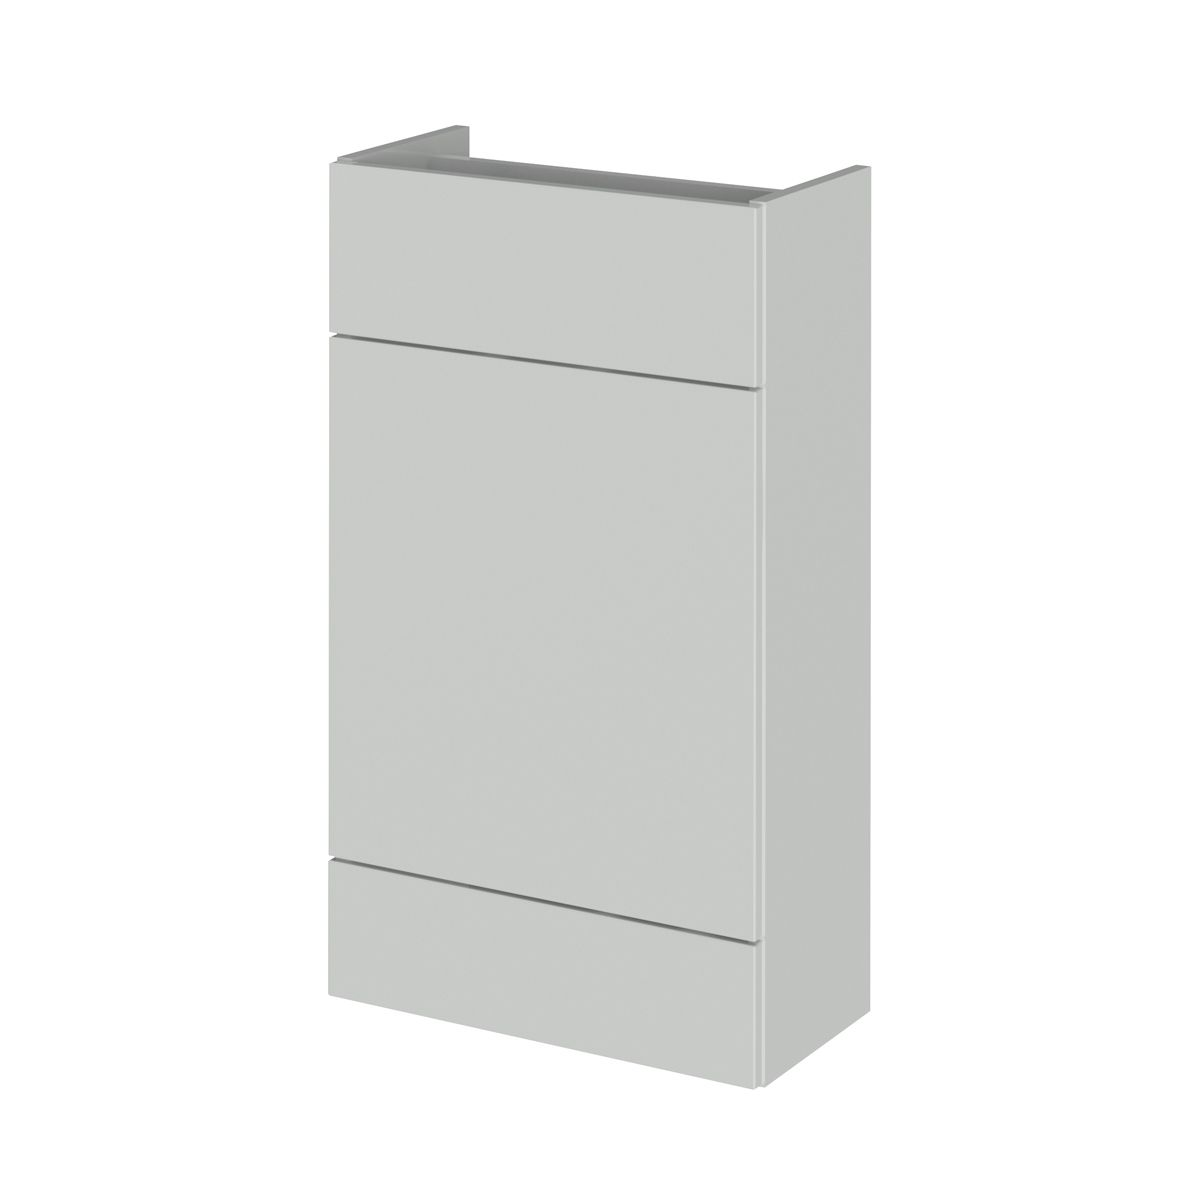 Hudson Reed Fusion Gloss Grey Mist WC Unit 500mm